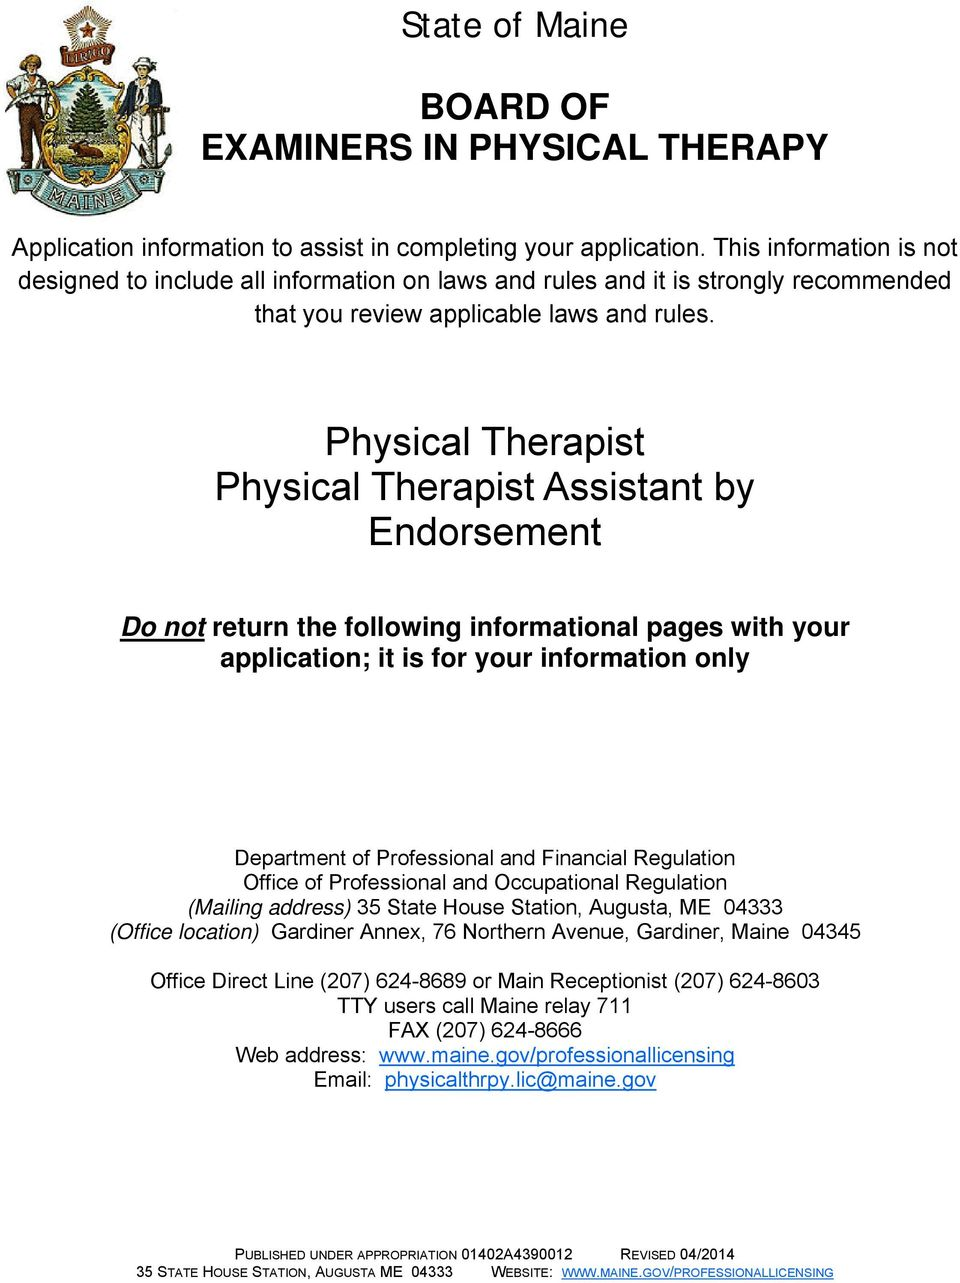 Physical Therapist Physical Therapist Assistant by Endorsement Do not return the following informational pages with your application; it is for your information only Department of Professional and